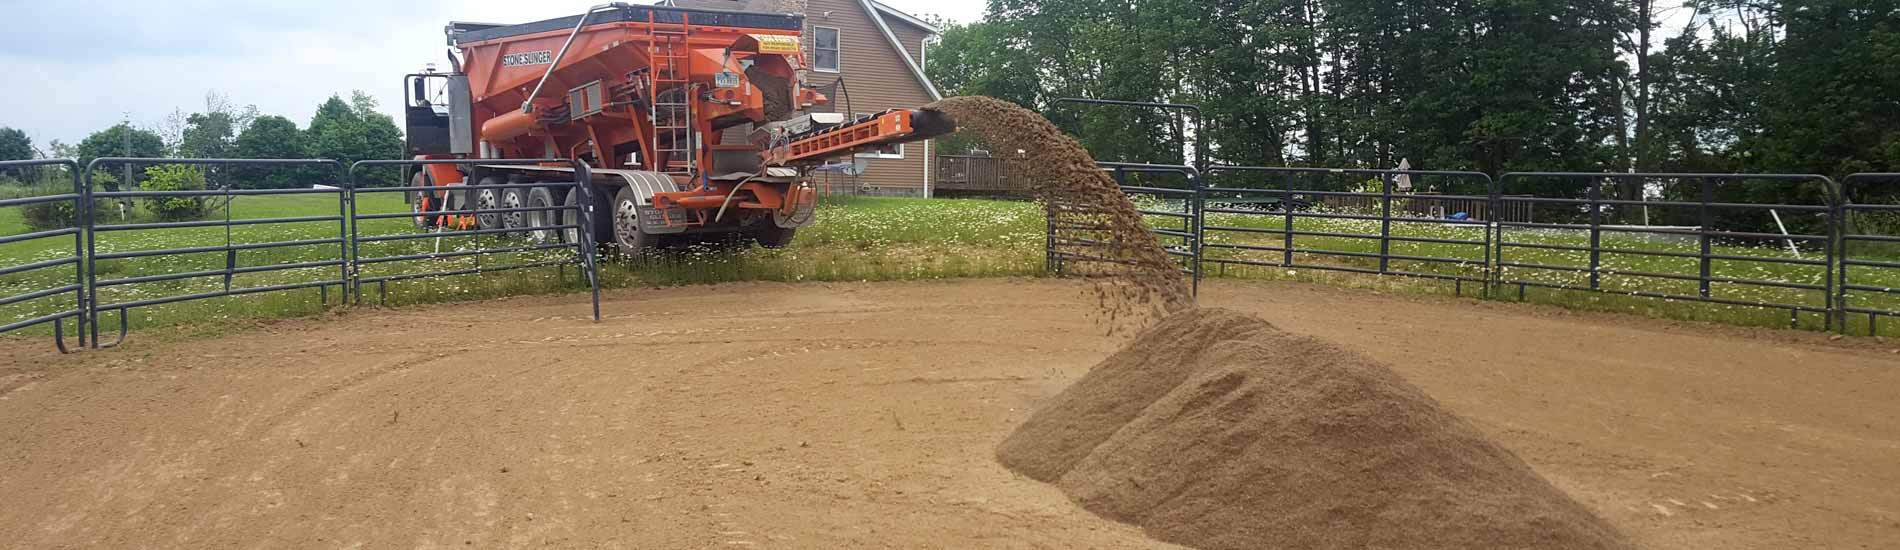 Stone slinger throwing gravel sand into a horse training ring